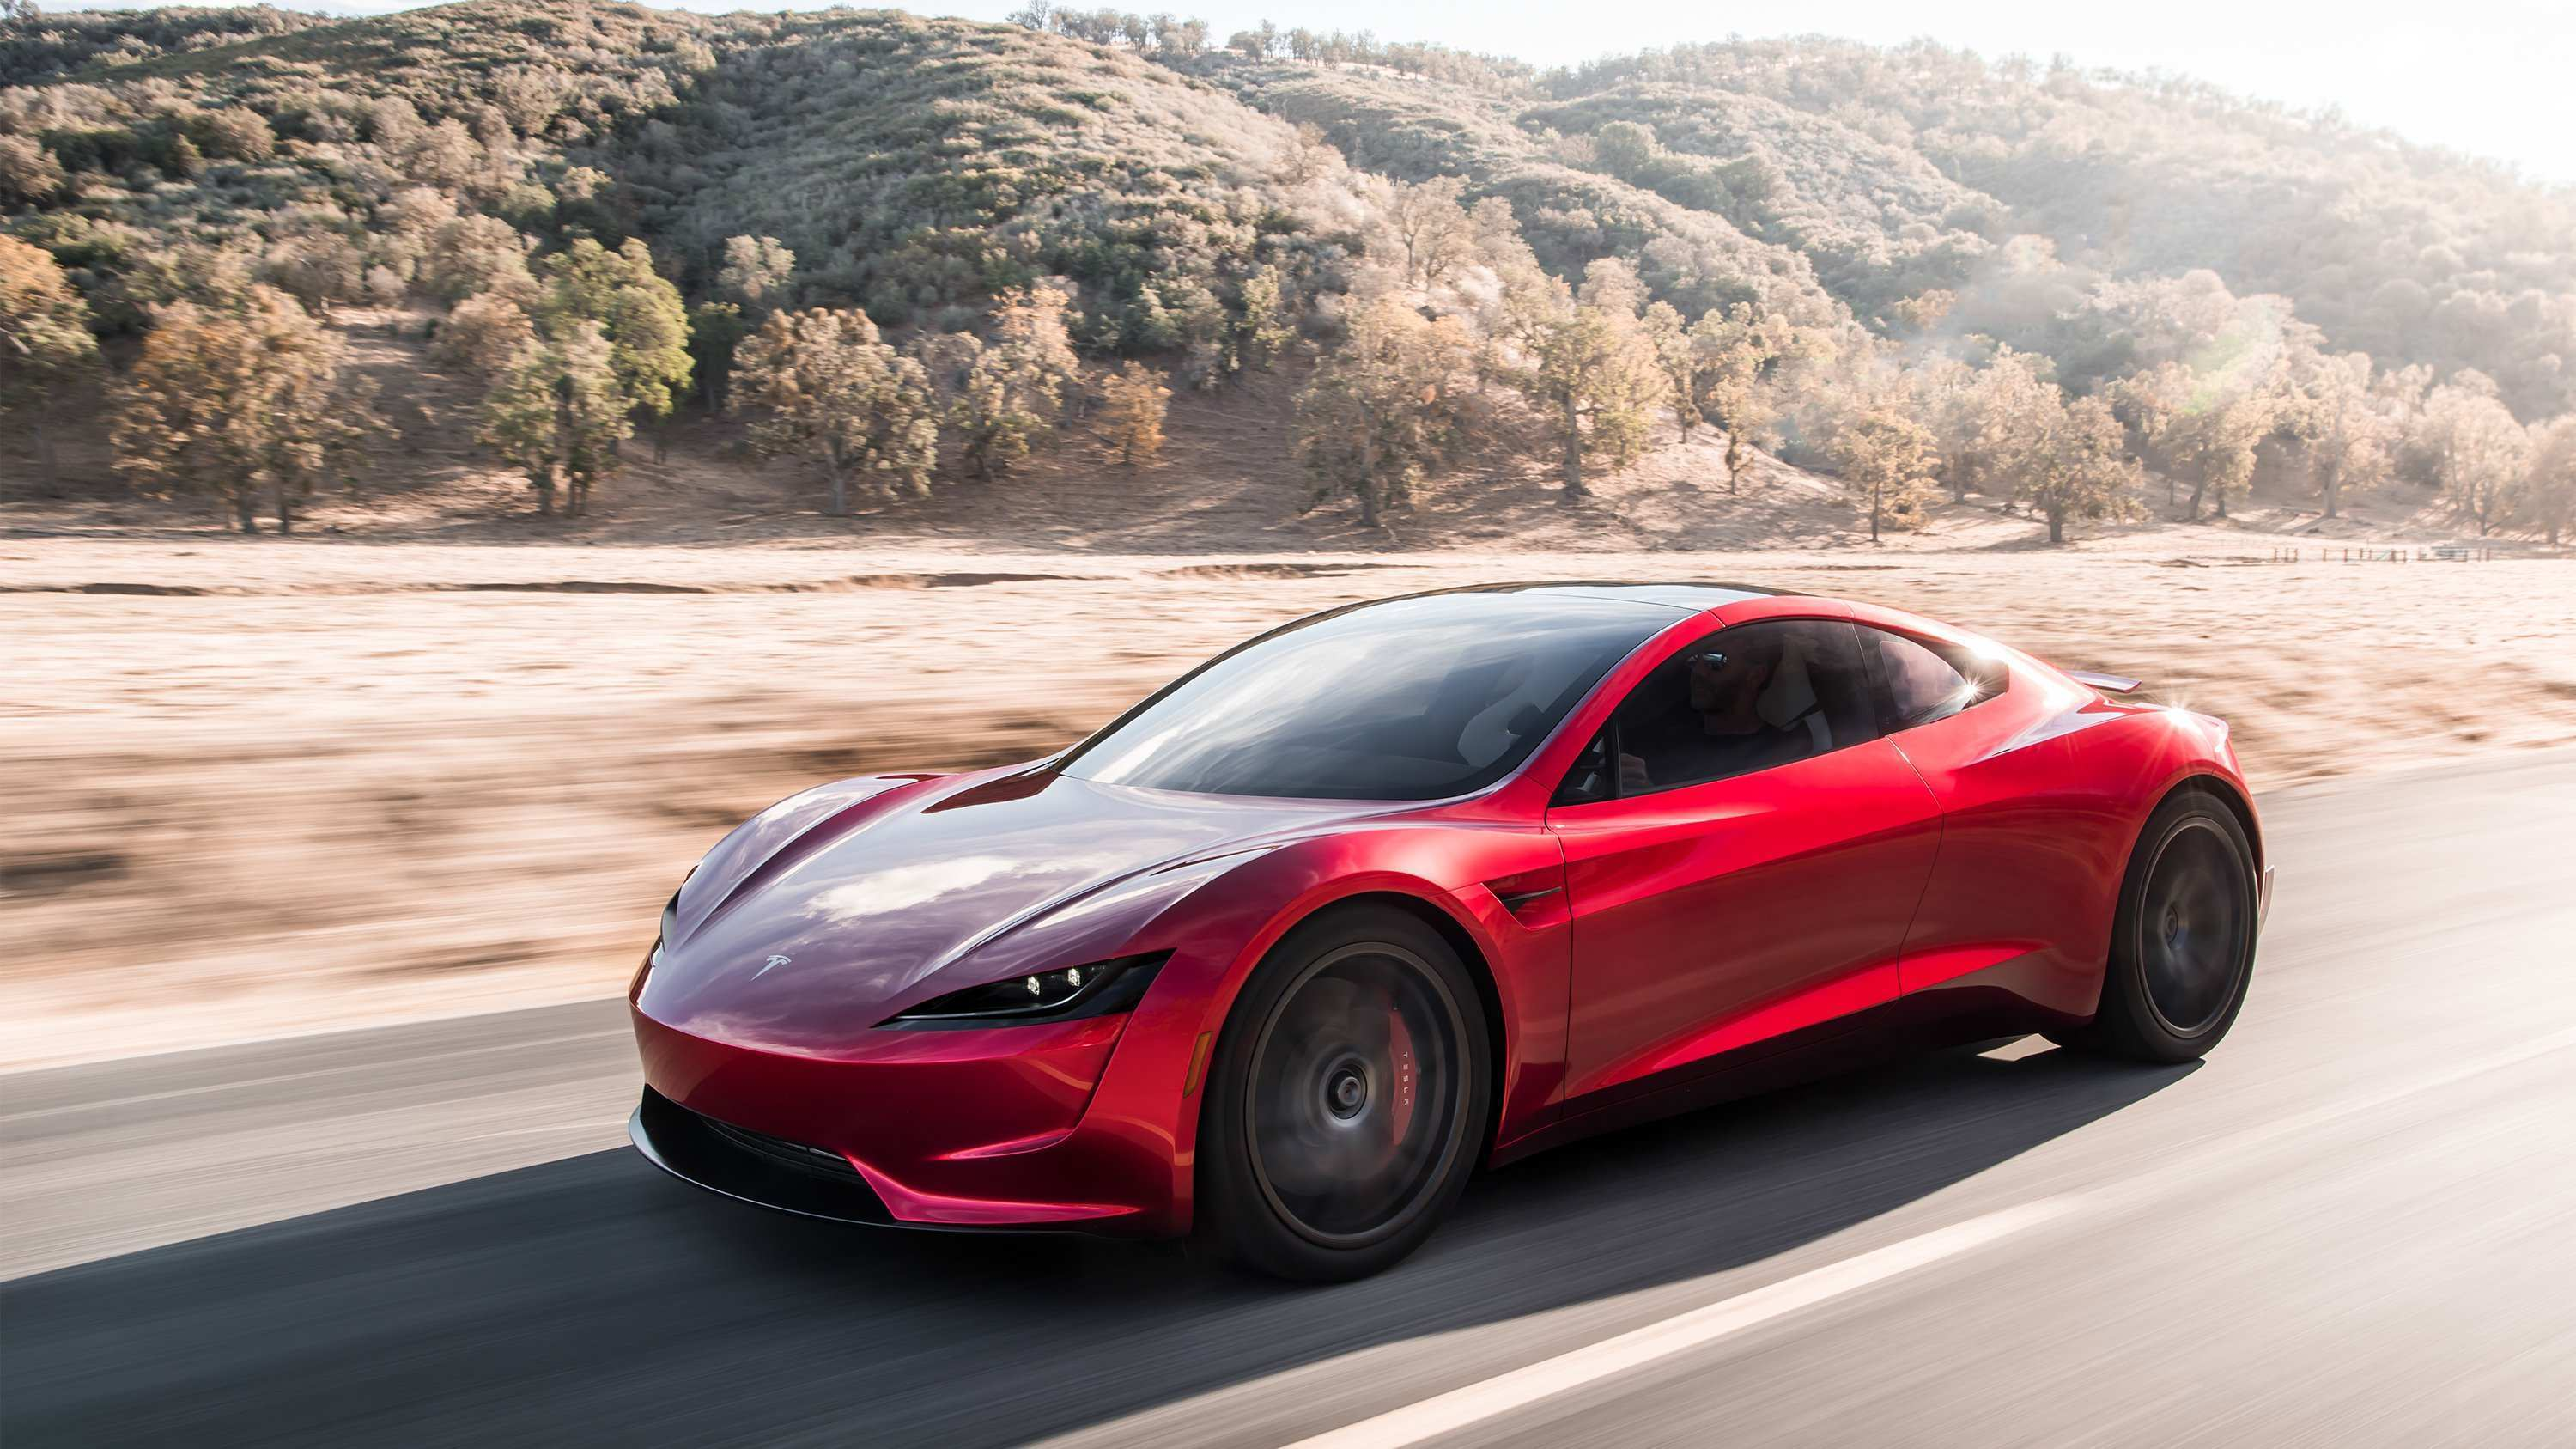 93 Best Review 2020 Tesla Roadster Charge Time Configurations with 2020 Tesla Roadster Charge Time